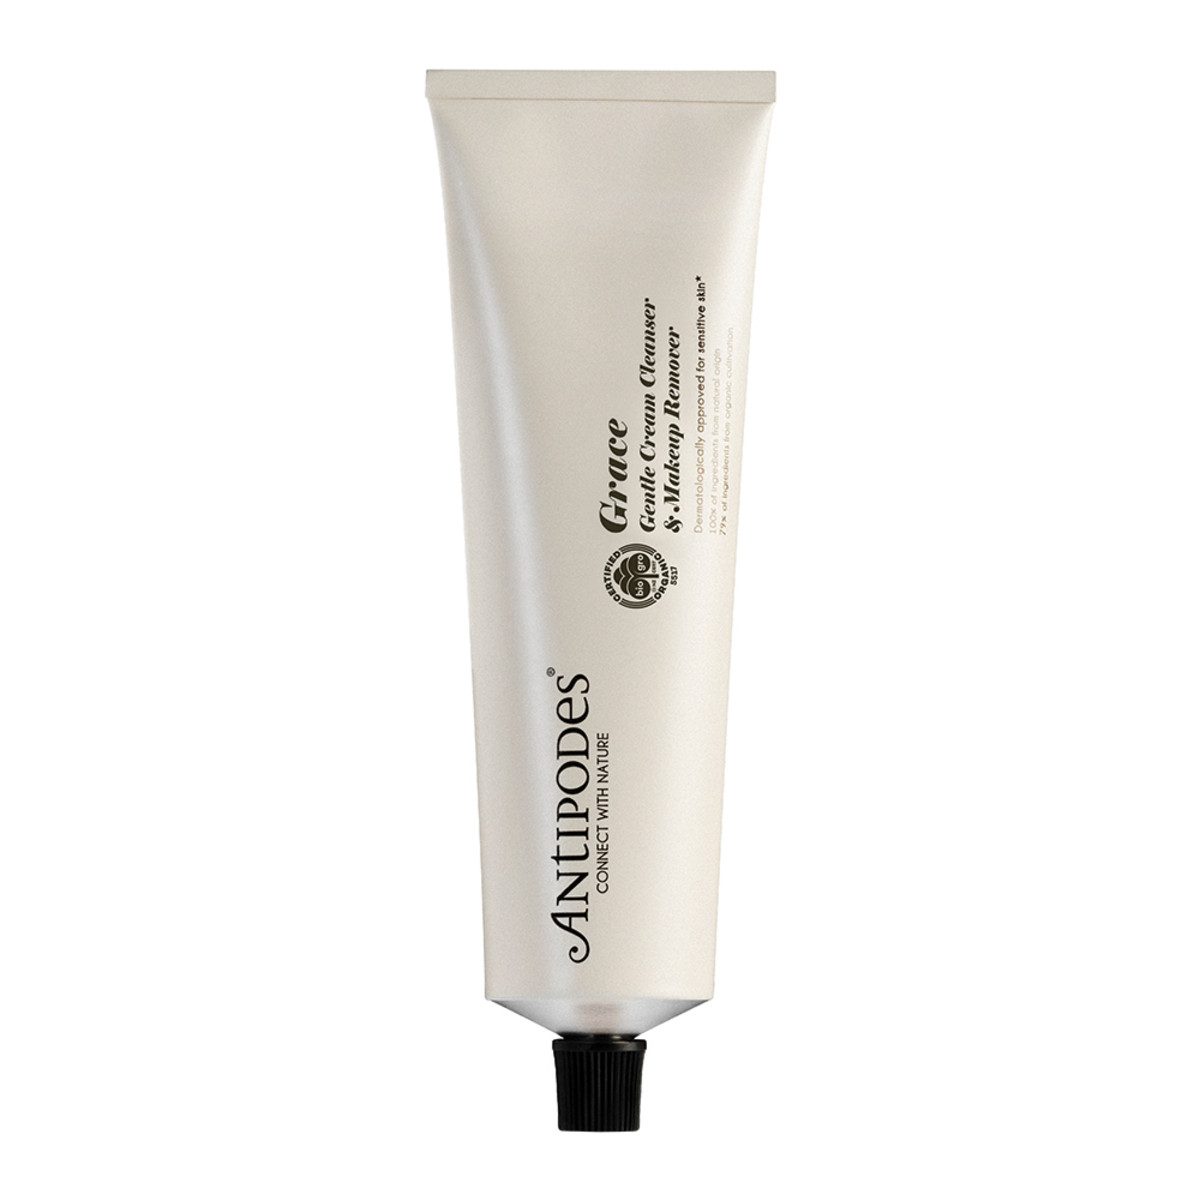 Antipodes Cream Cleanser & Makeup Remover Grace 120ml_media-01